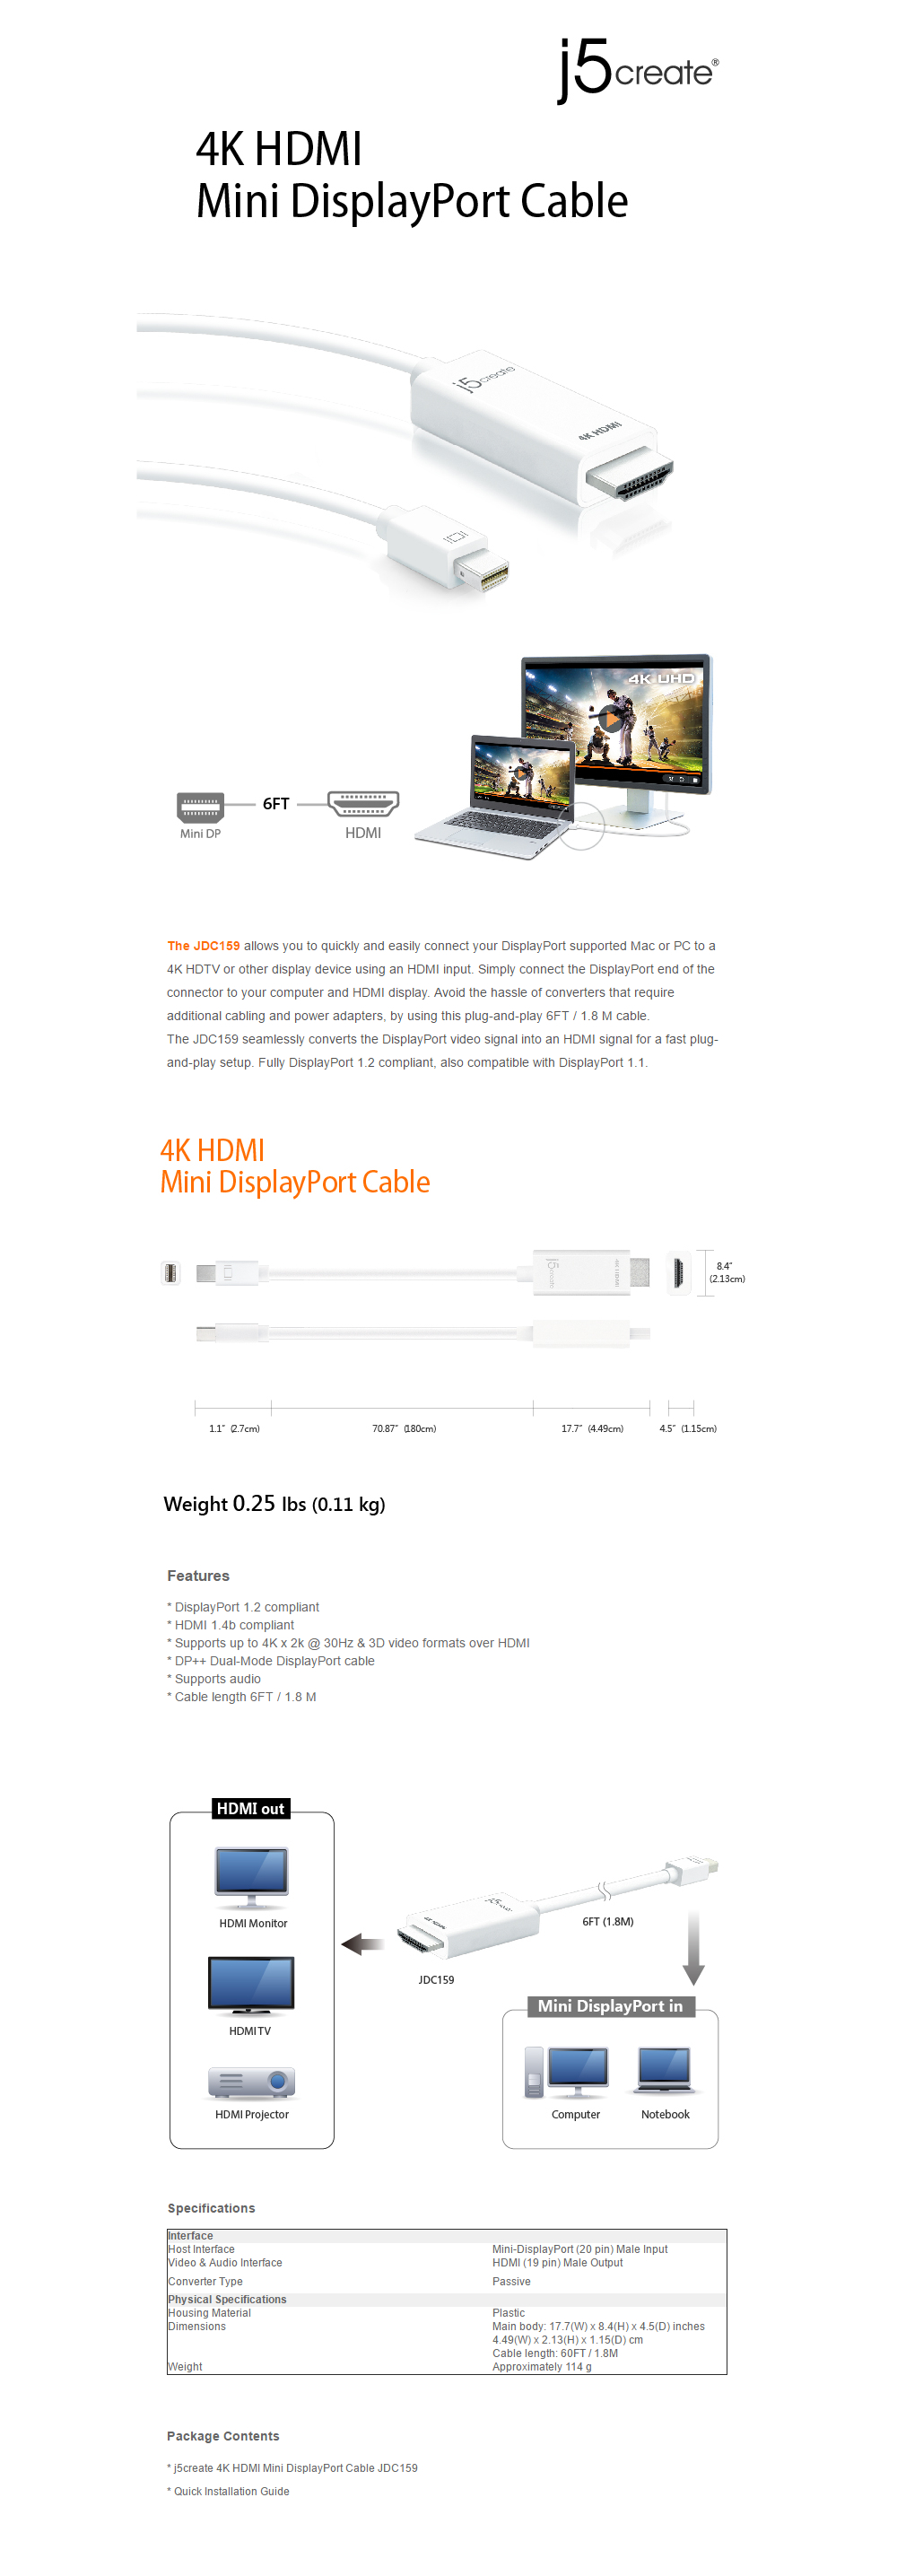 Mobile Accessories Cables J5create Jdc159 4k Hdmi Mini Display Port To Adapter 13cm Overview